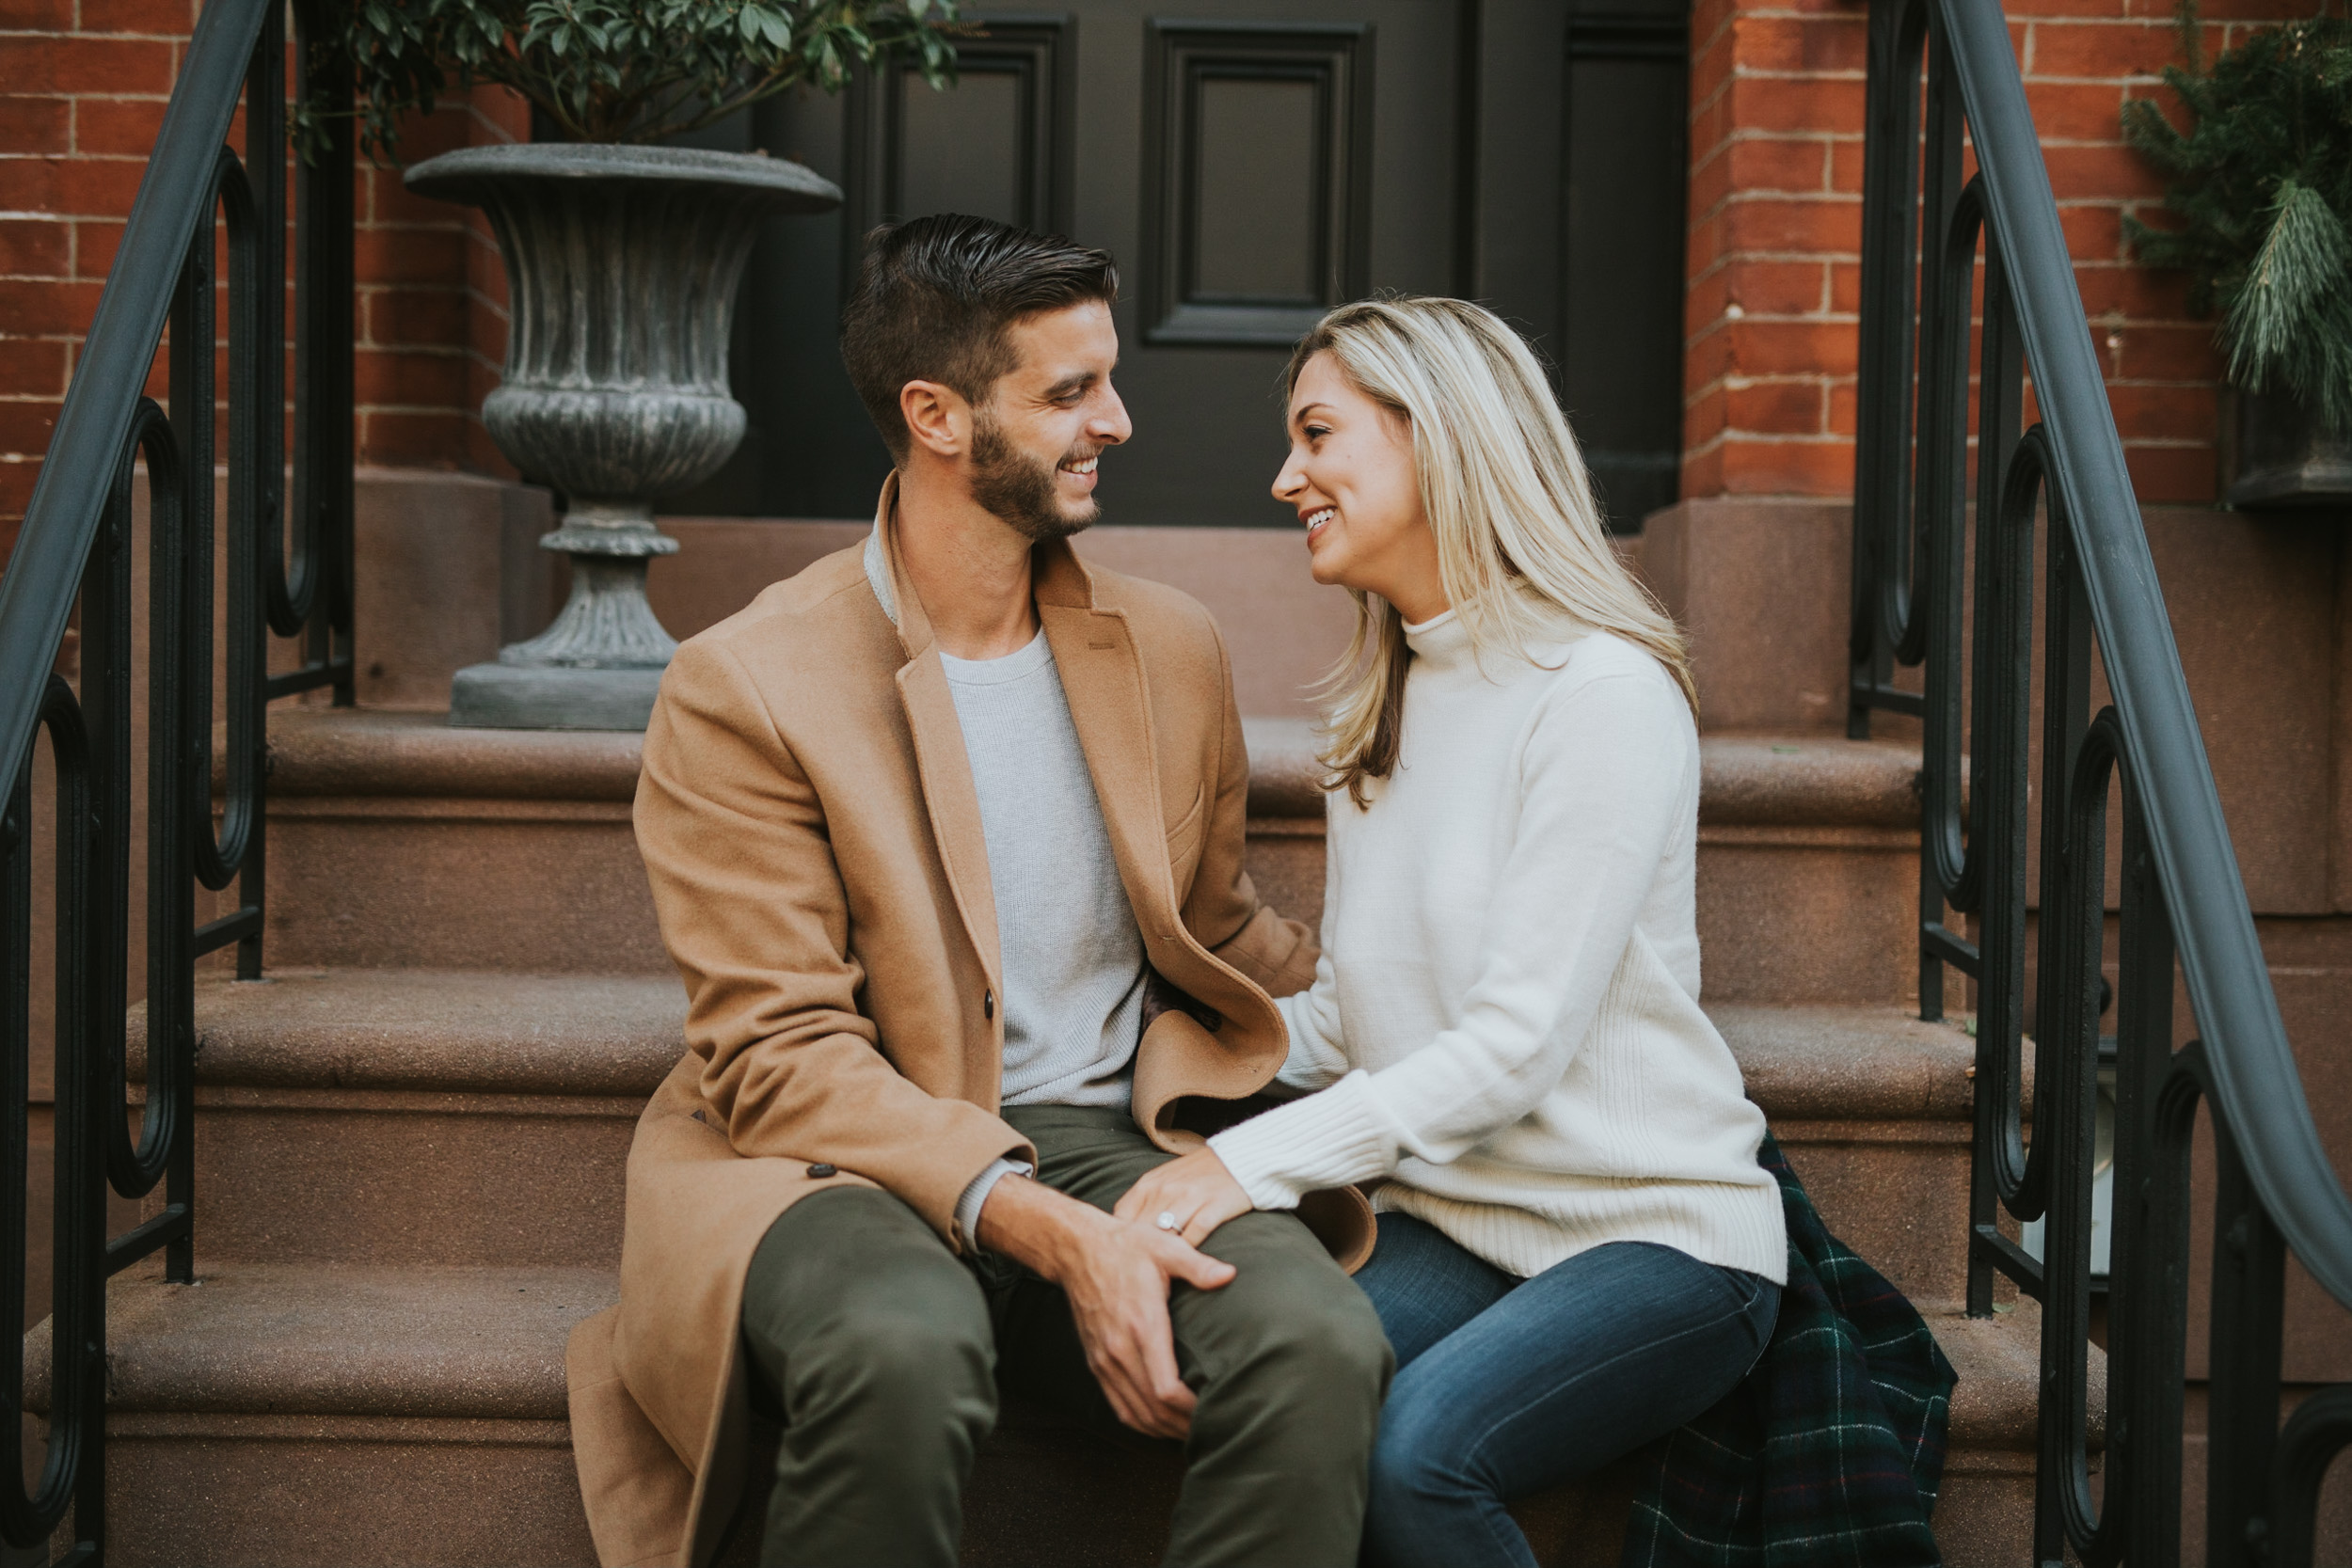 Colorful Fall NYC Engagement Session_Polly C Photography 1721151449.jpg